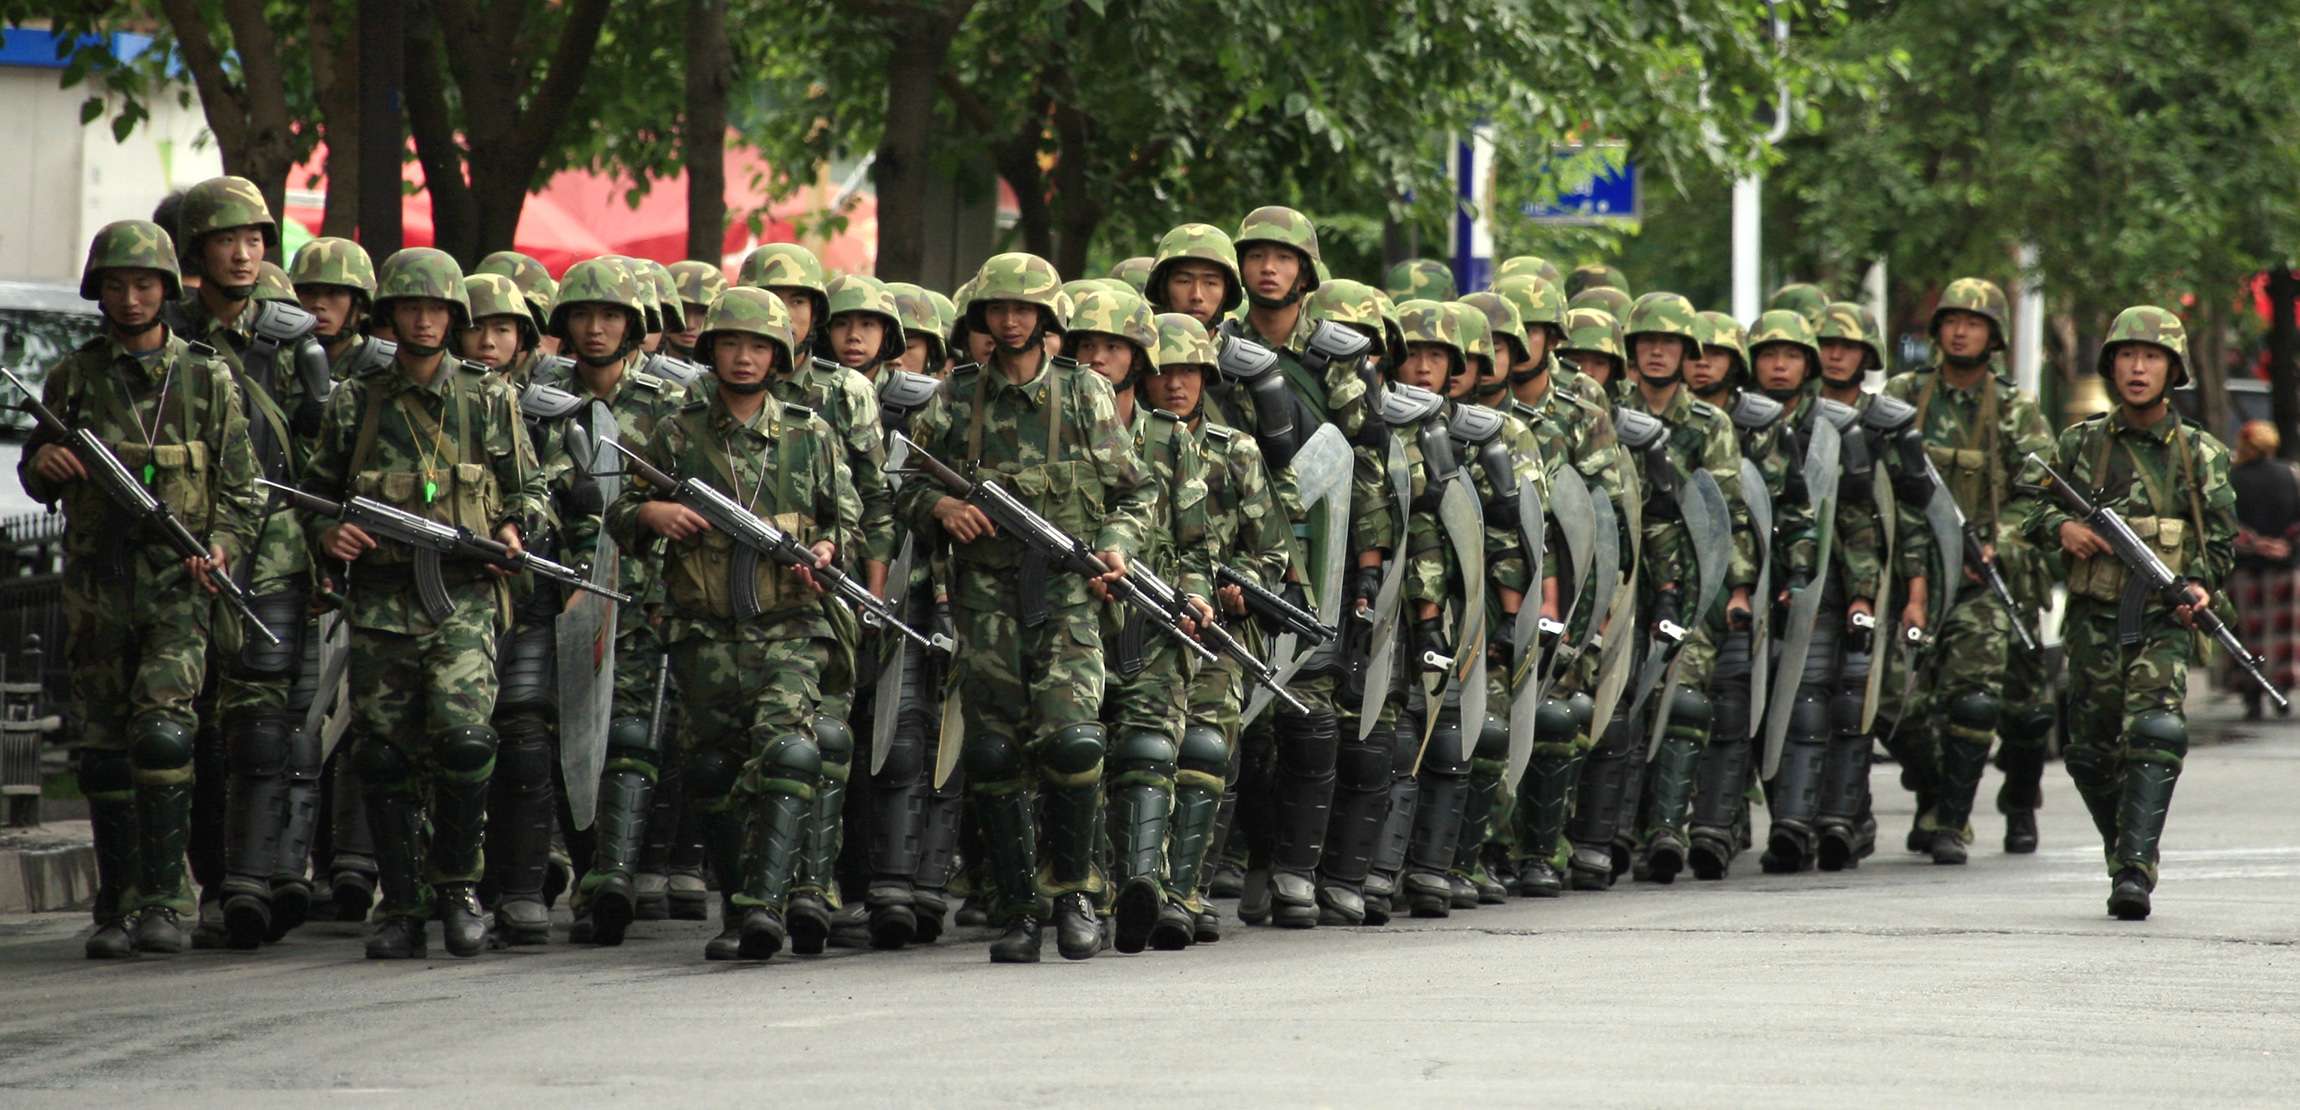 Armed Chinese paramilitary police in riot gear march along main near Dong Kuruk Bridge mosque in Urumqi in China's Xinjiang Autonomous Region